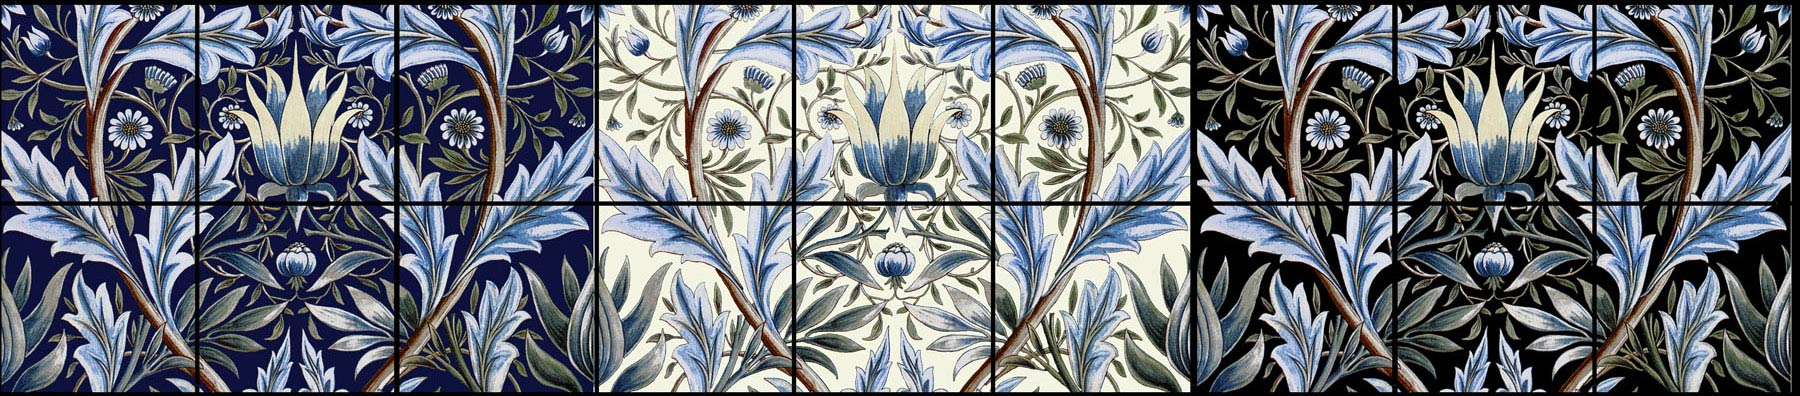 William De Morgan and William Morris collaboration: Membland tile panels (detail)